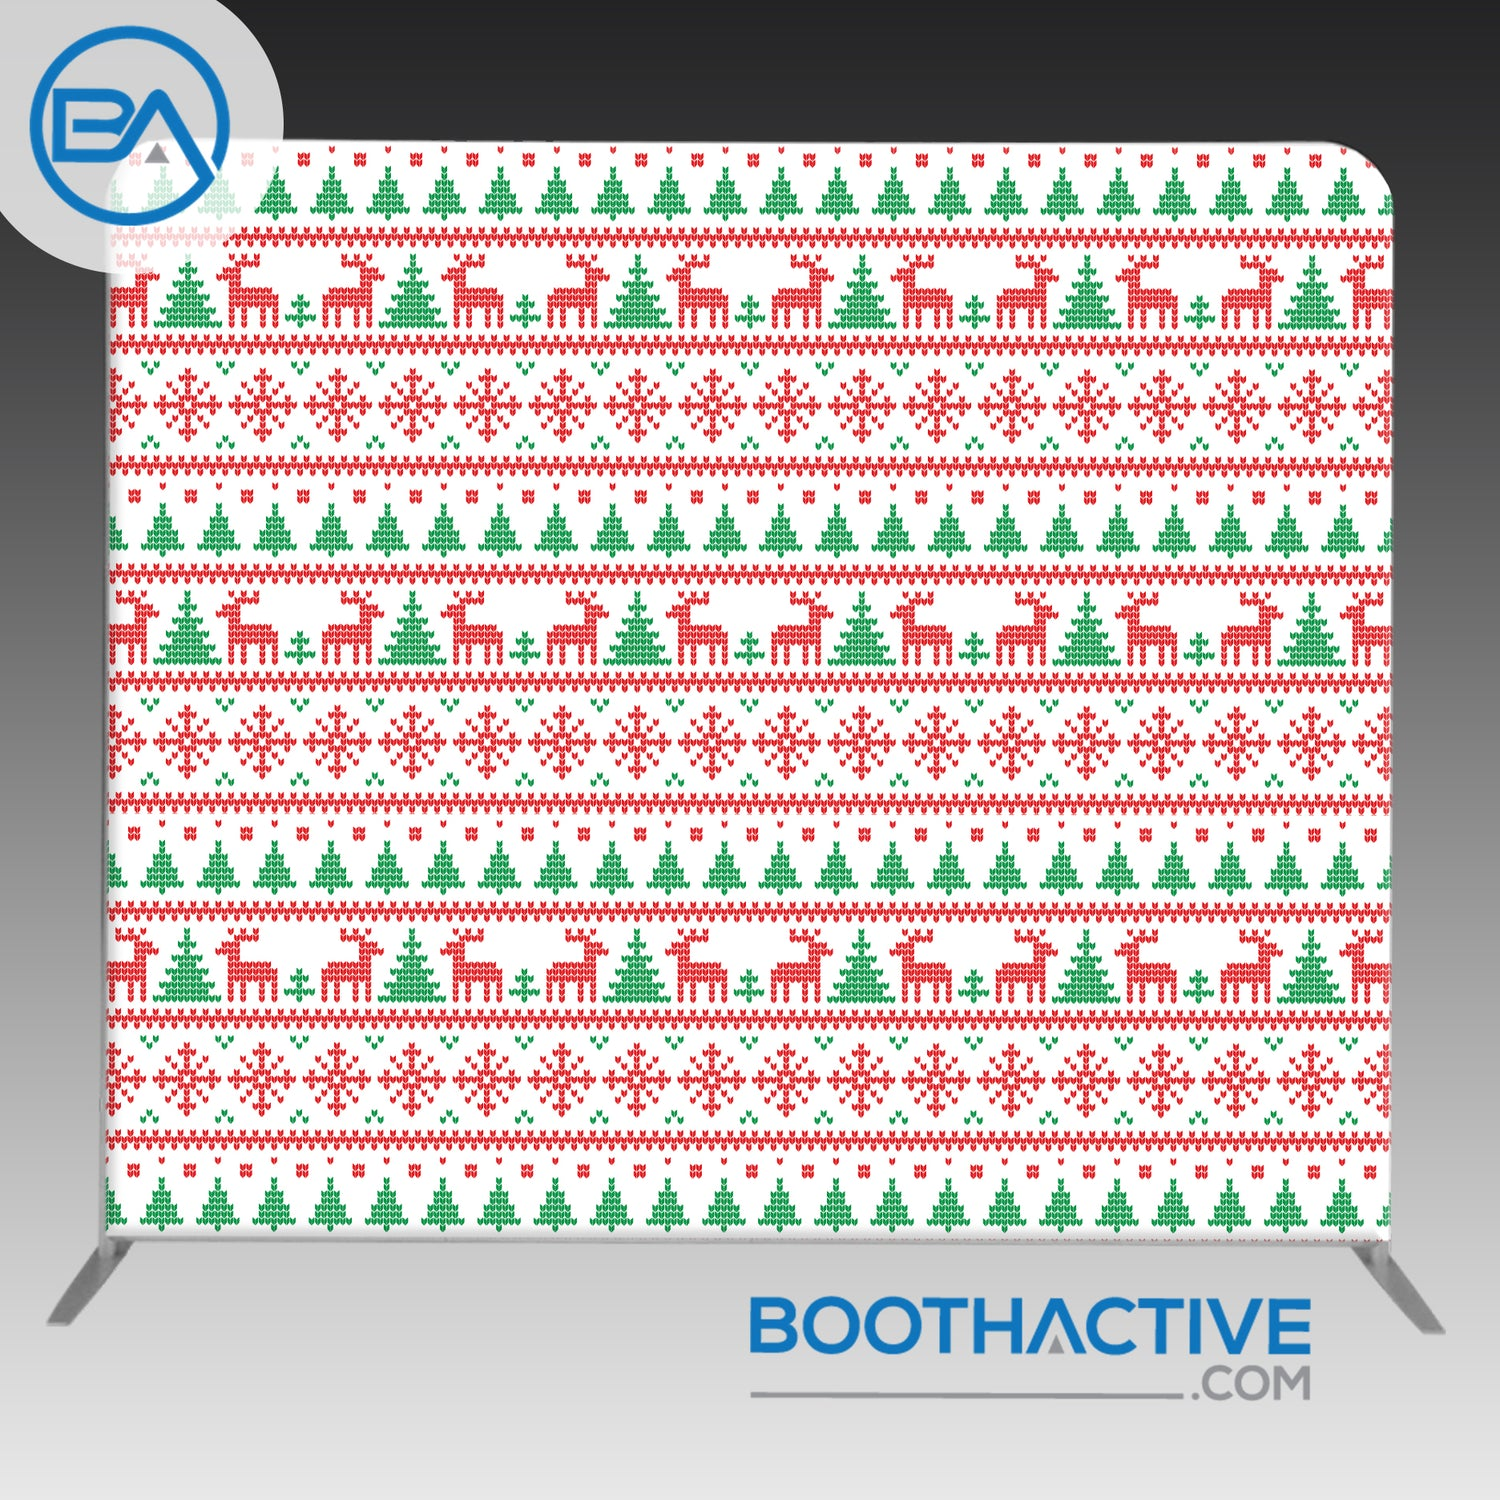 8' x 8' Backdrop - Holiday - Christmas Sweater - BoothActive